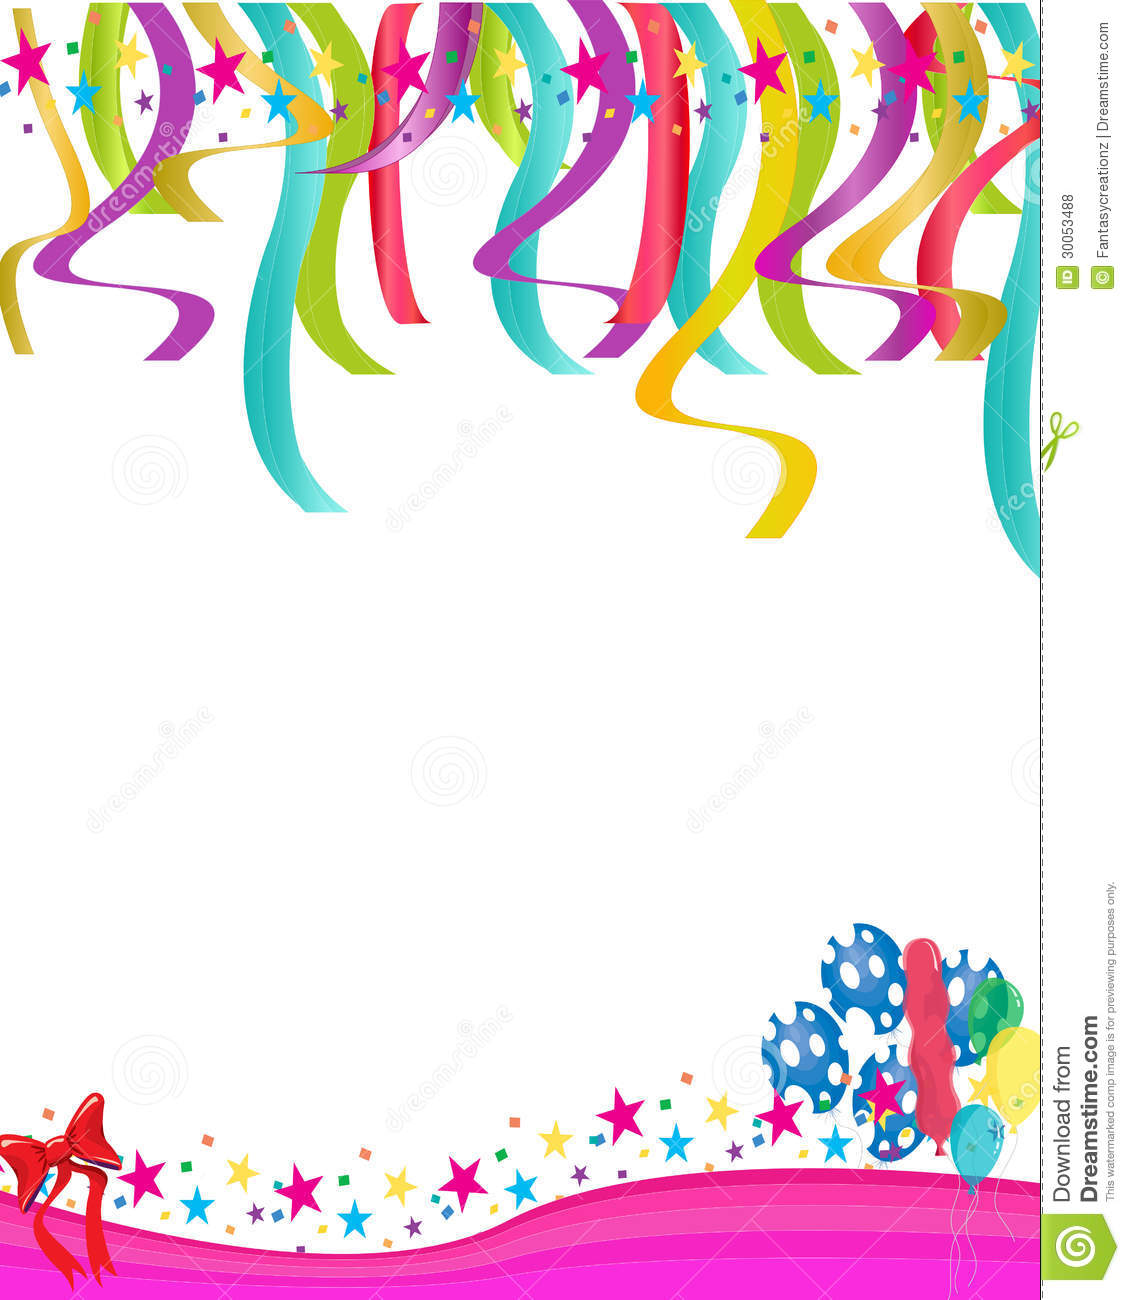 Party Invitation Royalty Free Stock Photos - Image: 30053488